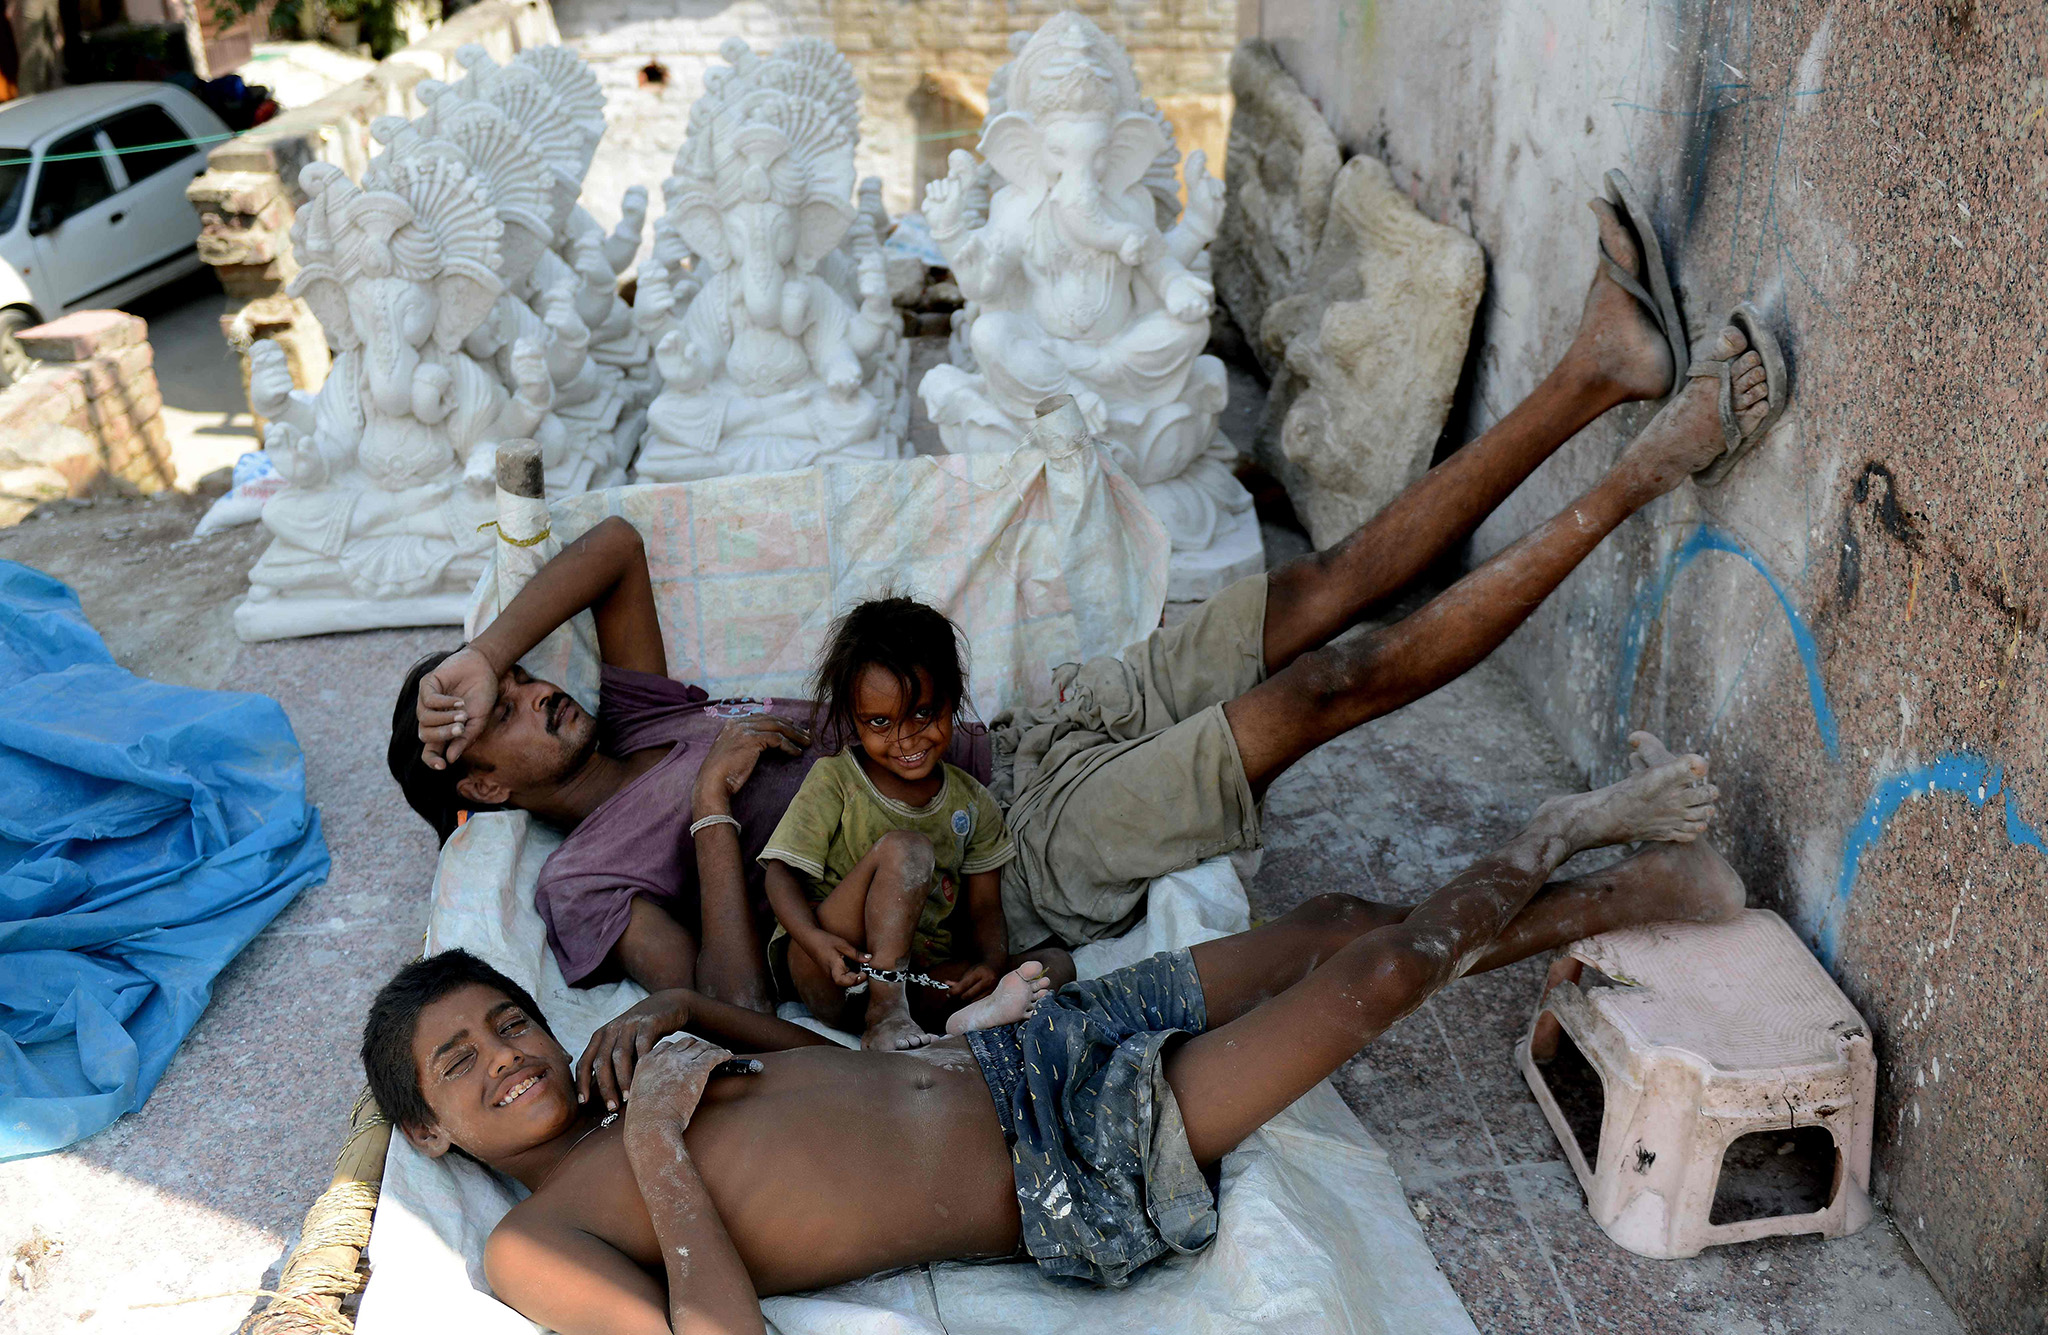 Indian workers take a nap near idols of the elephant-headed Hindu god Lord Ganesha at a roadside workshop in New Delhi on August 8, 2016.